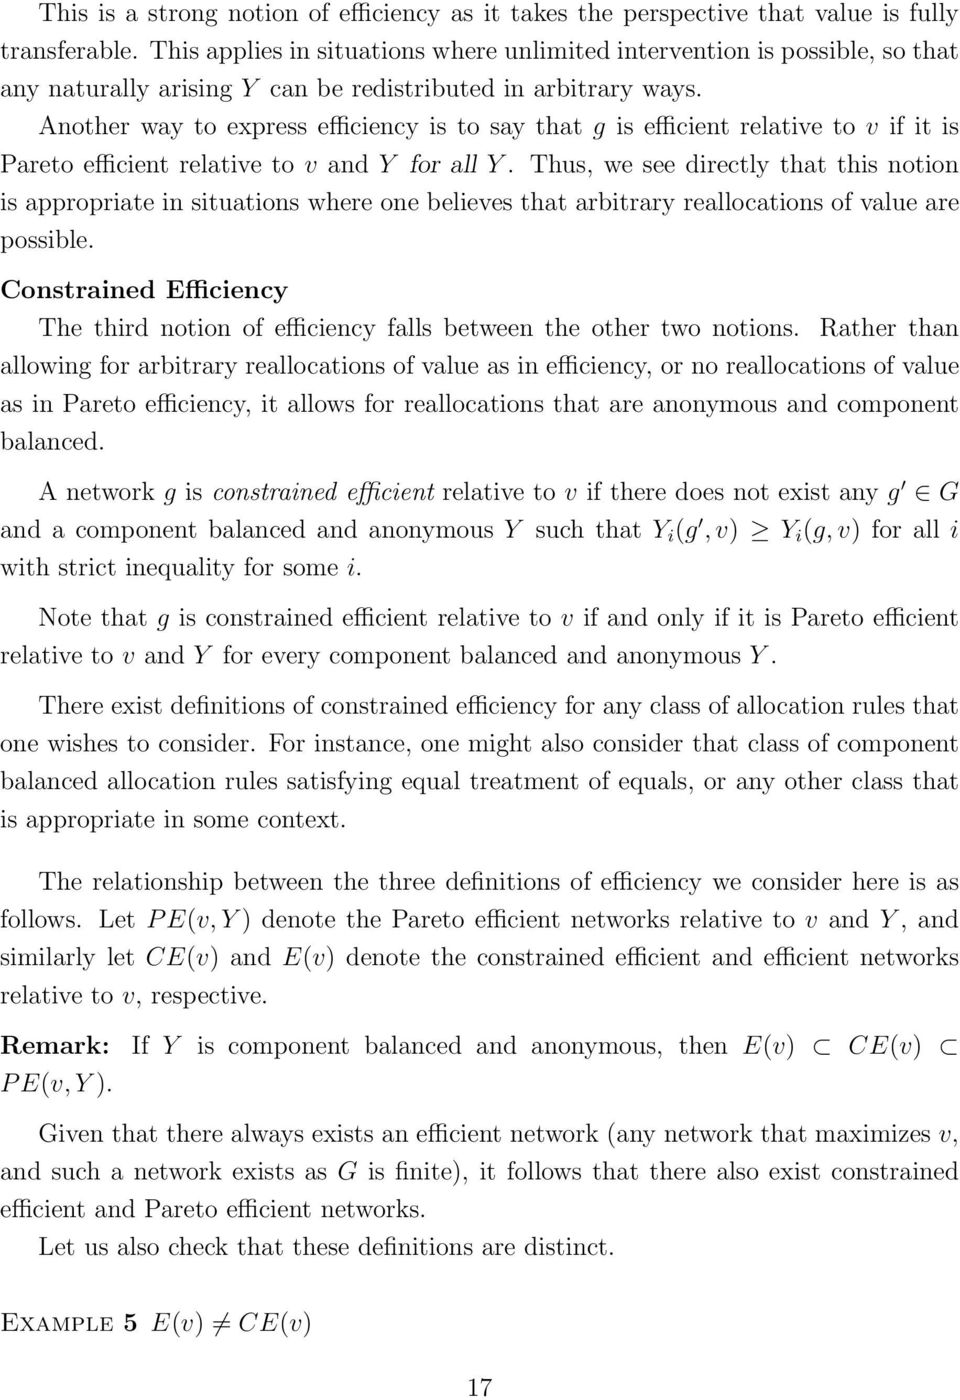 Another way to express efficiency is to say that g is efficient relative to v if it is Pareto efficient relative to v and Y for all Y.